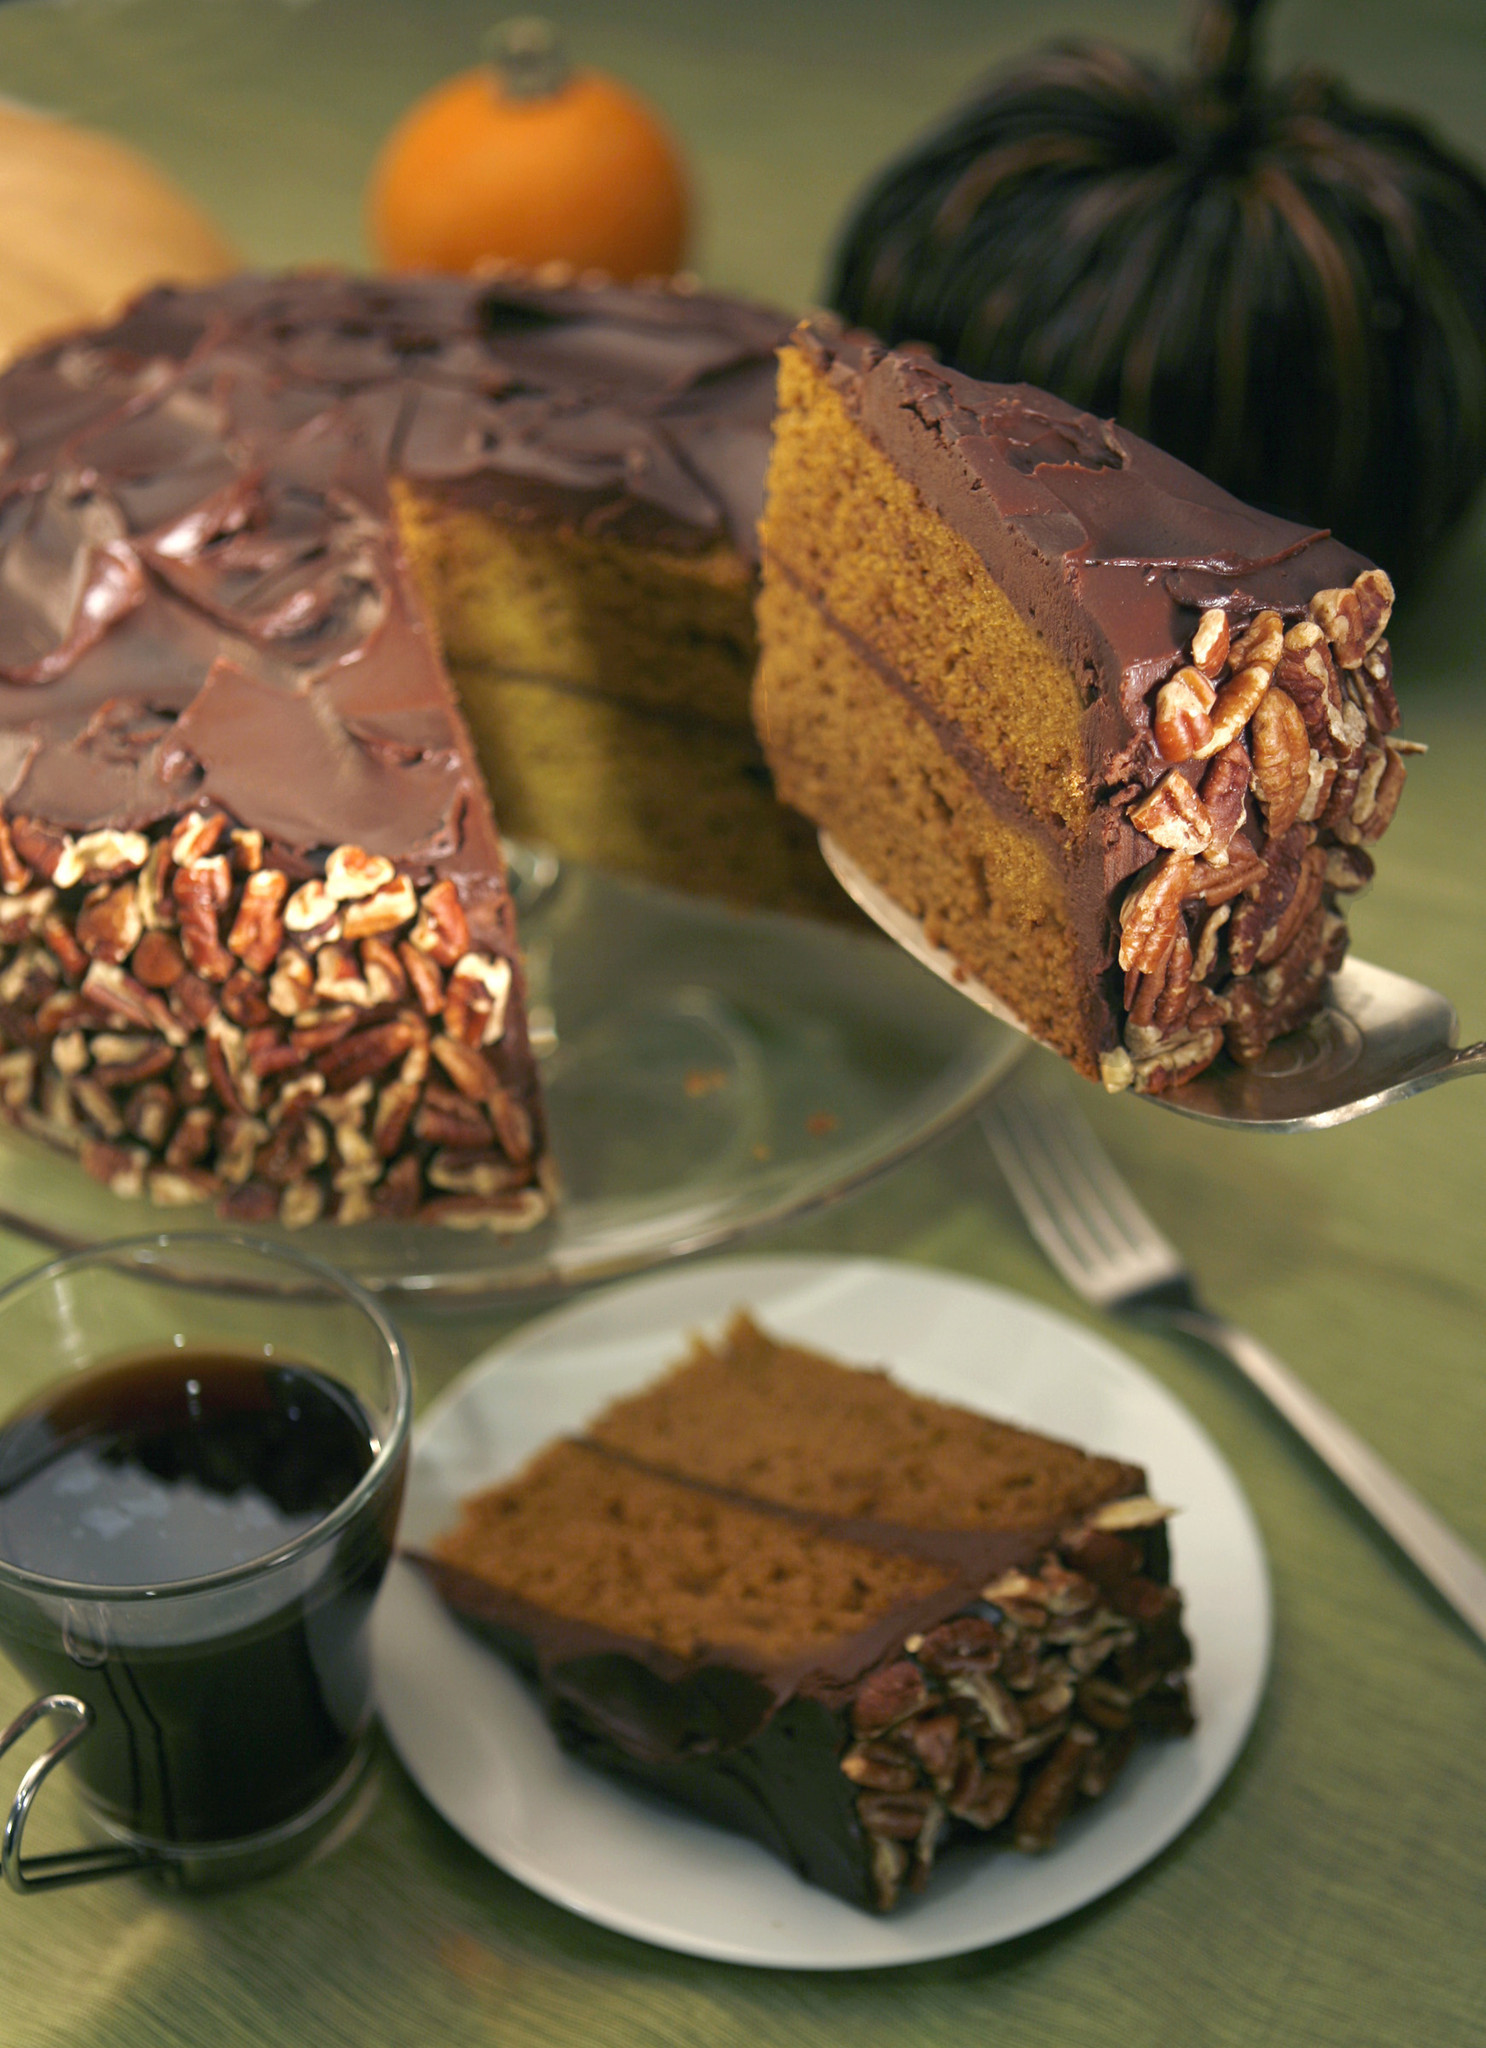 Photos: 97 great Thanksgiving recipes - Pumpkin-chocolate cake